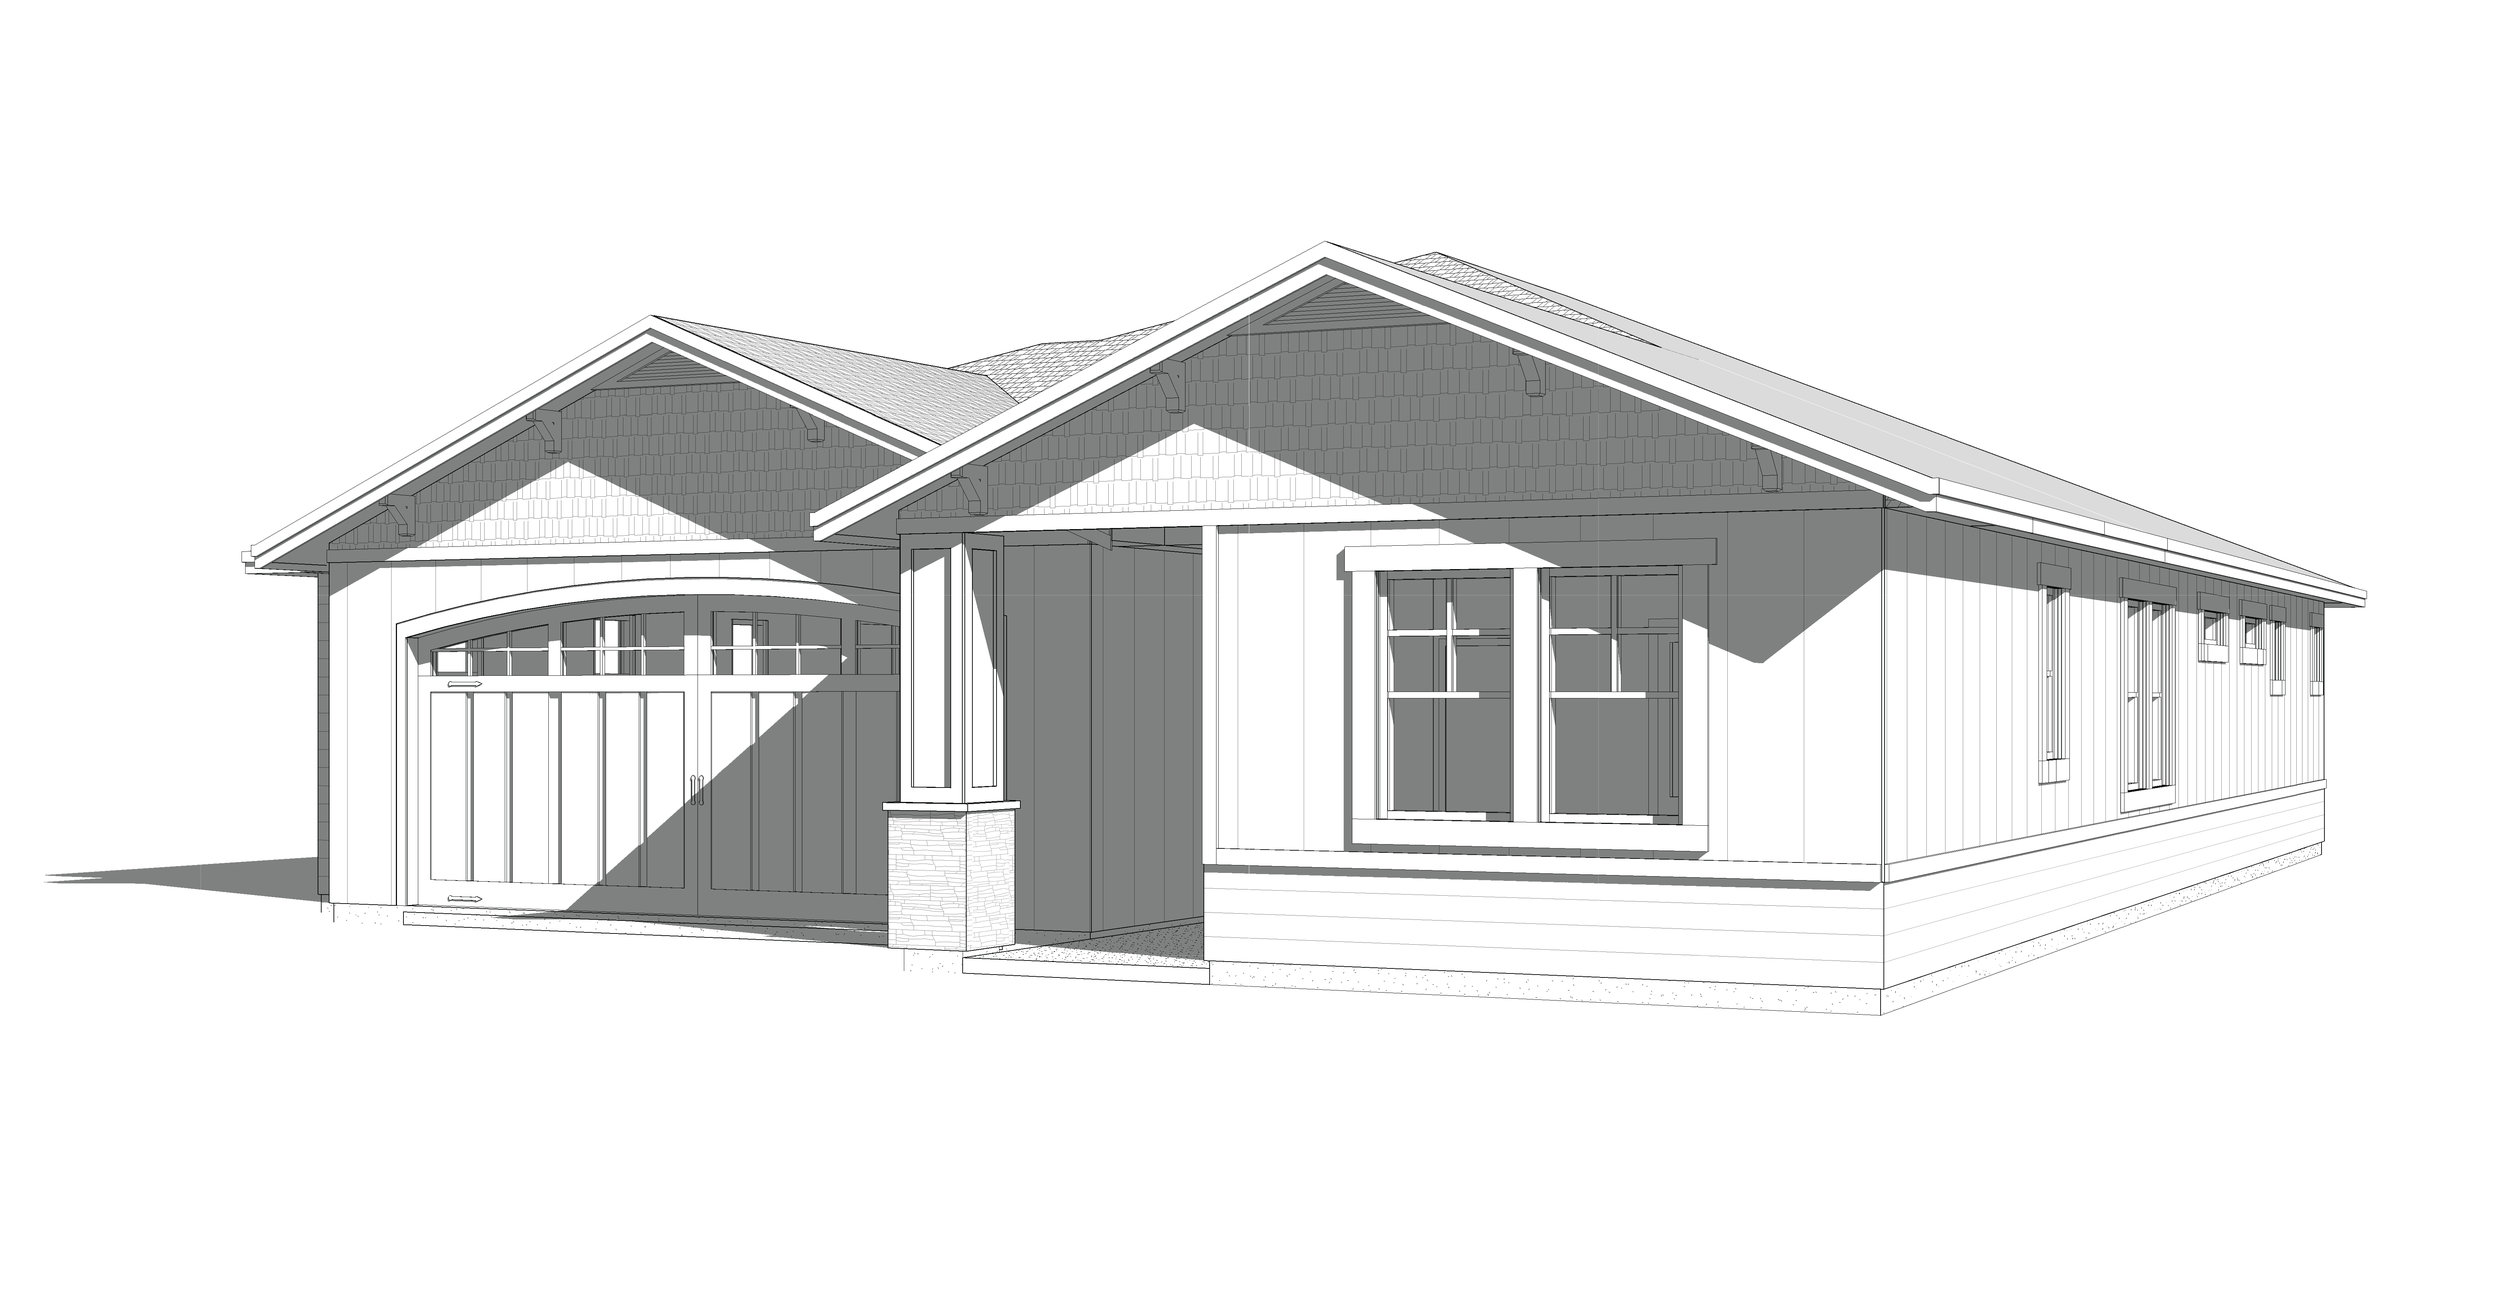 CLICK HERE TO VIEW FLOOR PLAN